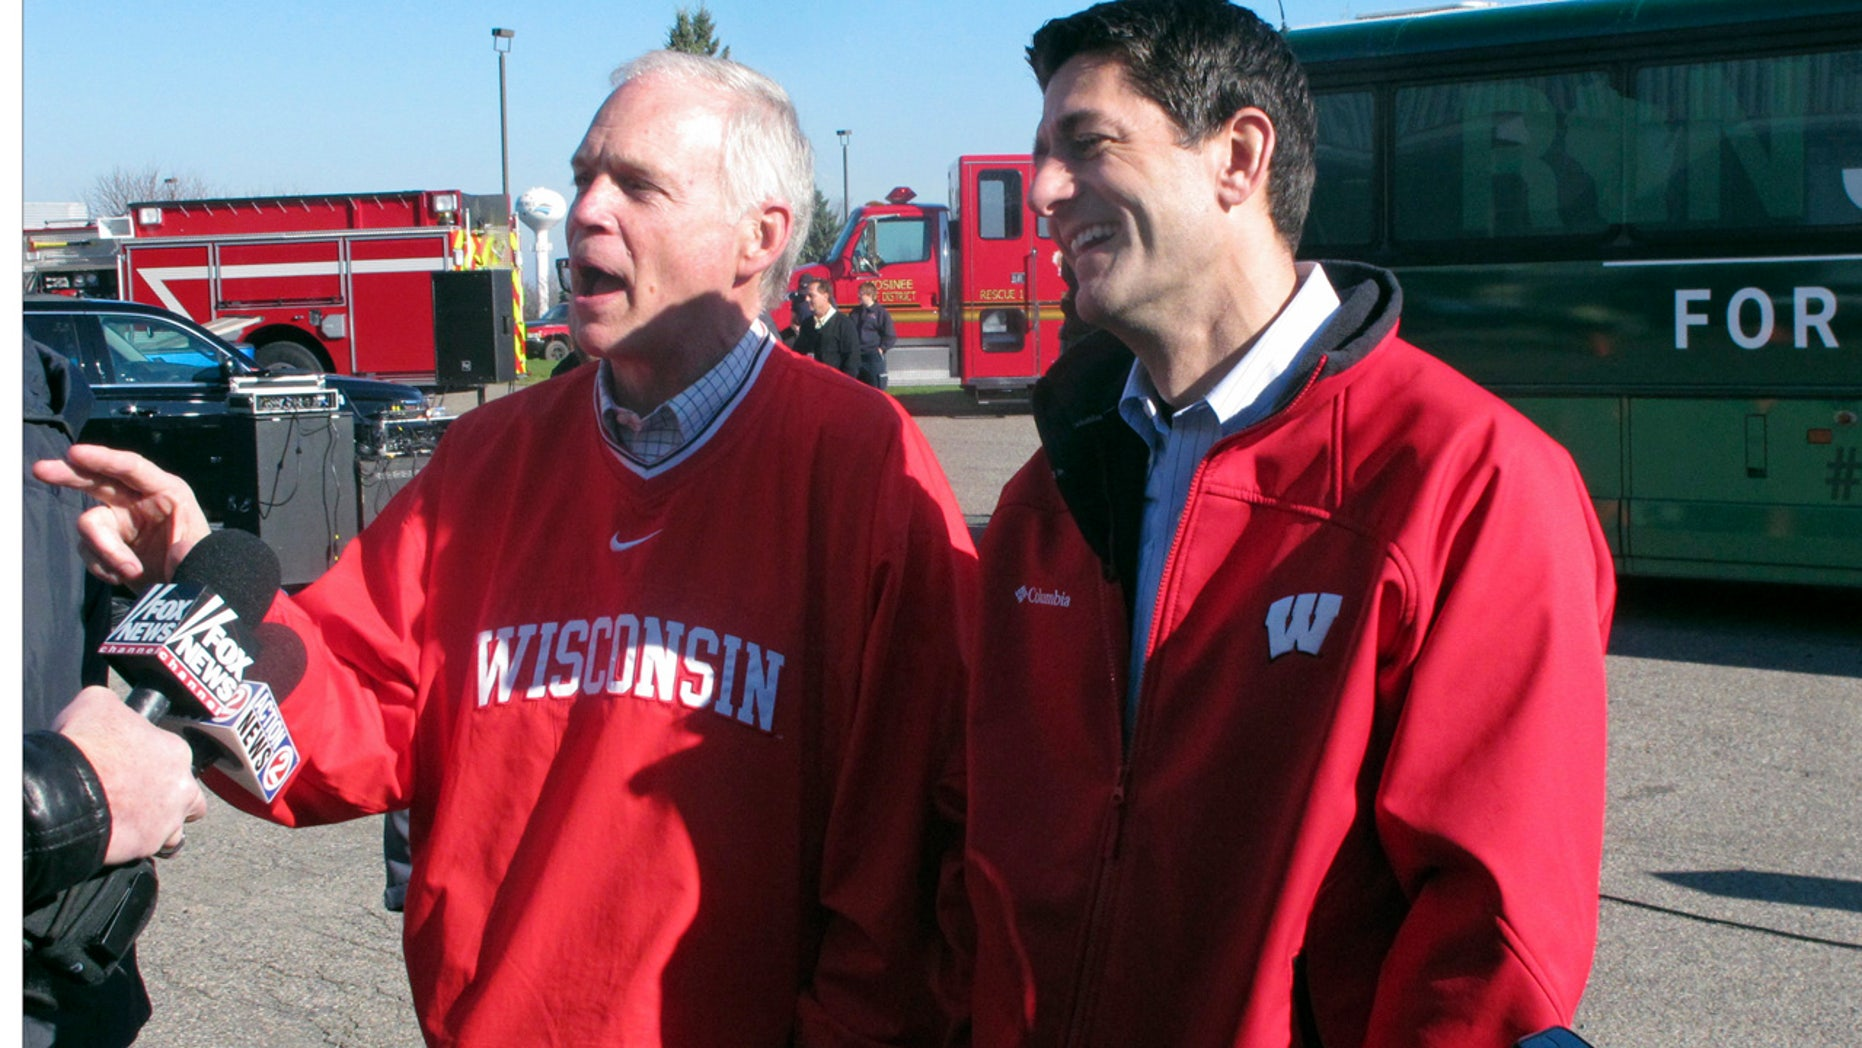 Nov. 4, 2016: U.S. House Speaker Paul Ryan, right, and Republican Sen. Ron Johnson, of Wisconsin, meet with reporters as they campaign together in Mosinee, Wis.